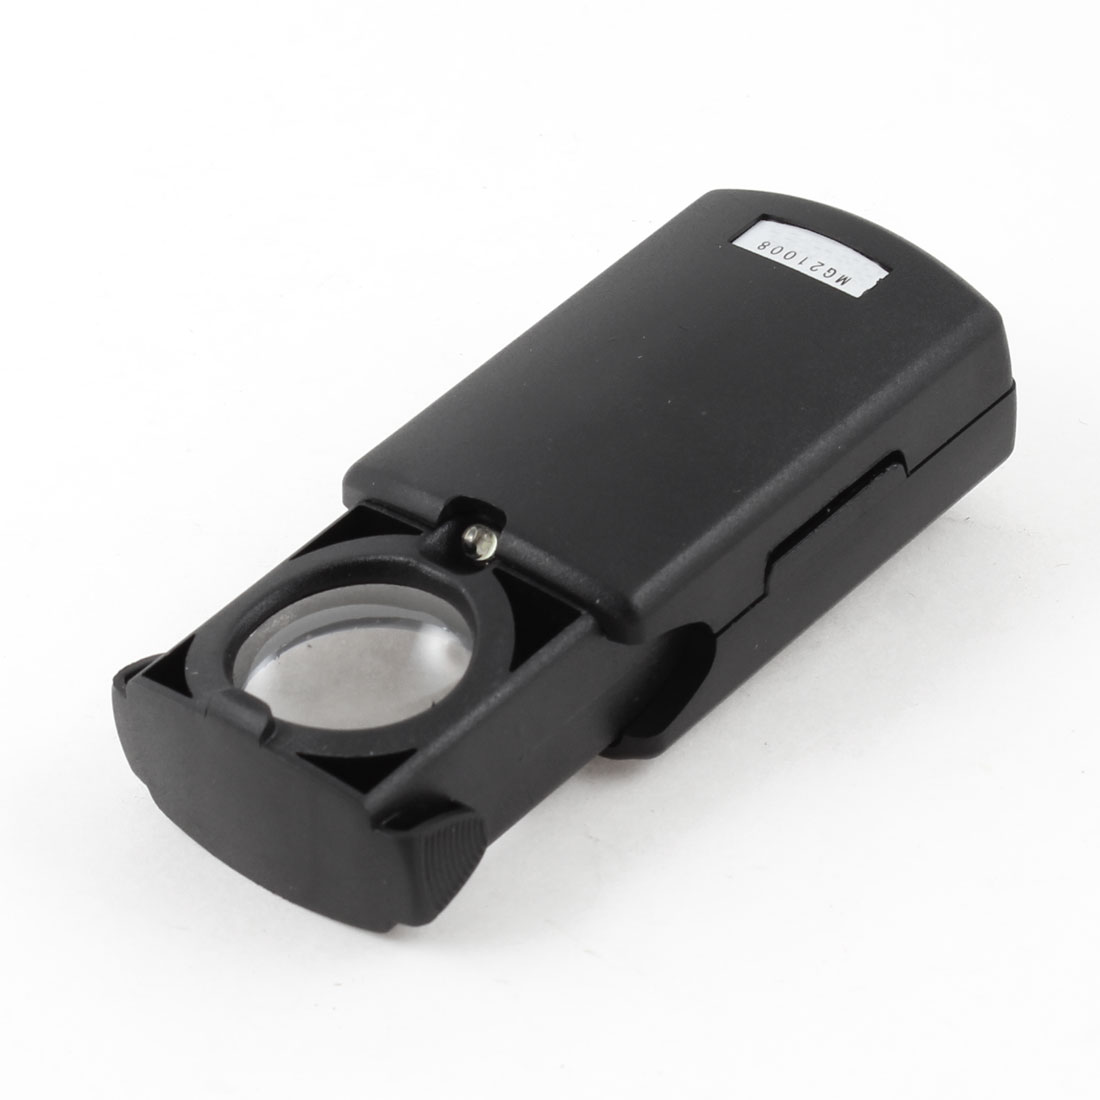 LED Light 21mm Foldable Jewelry Loupe Magnifying Glass Magnifier